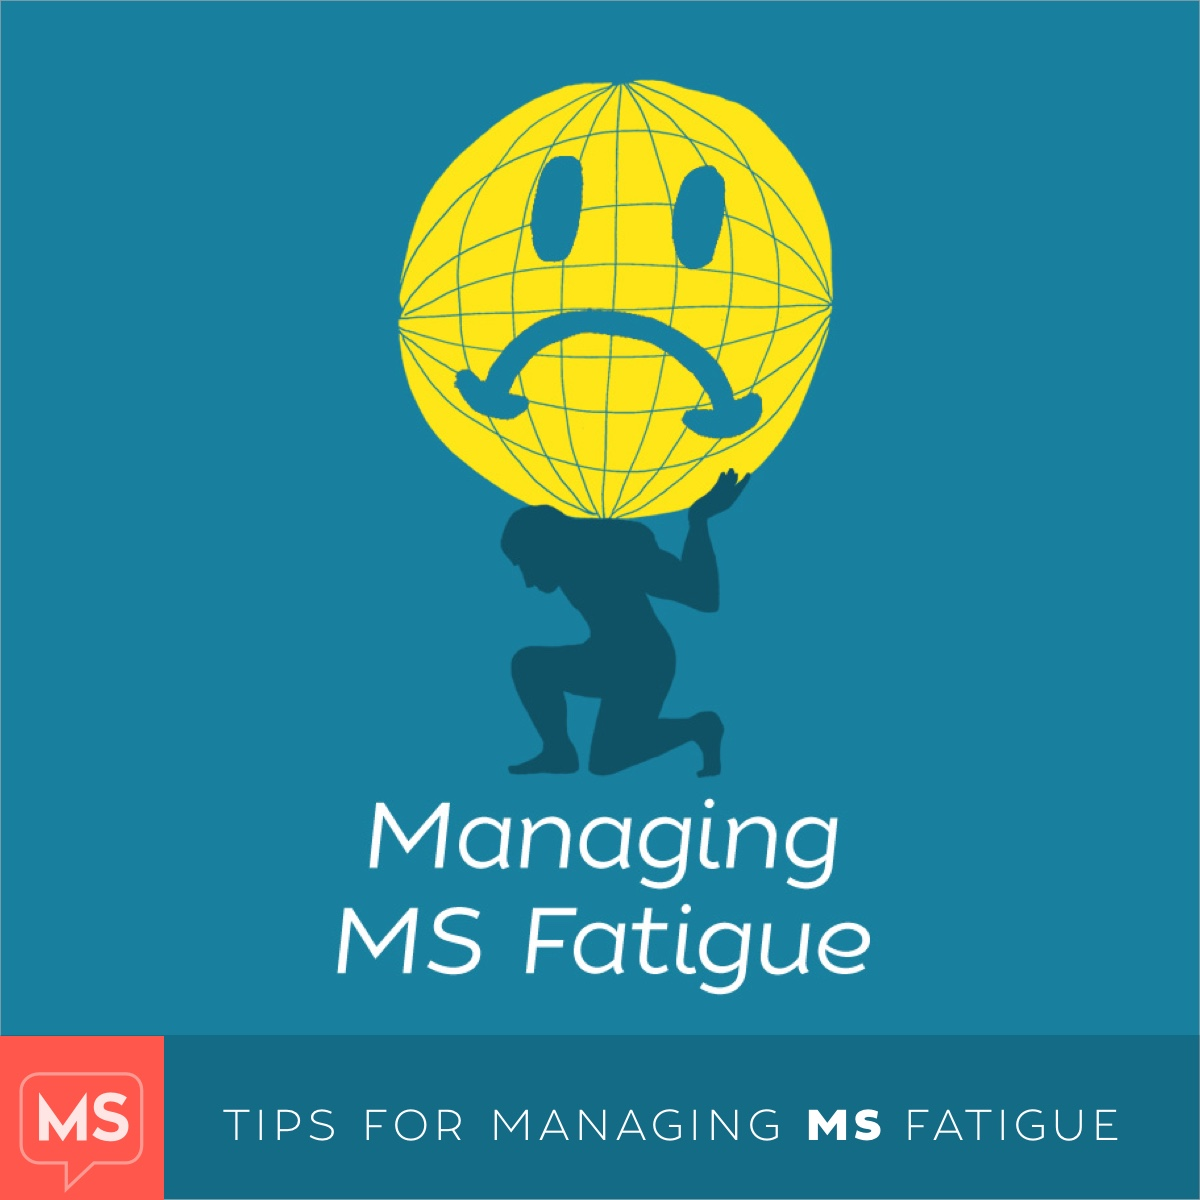 Managing MS Fatigue